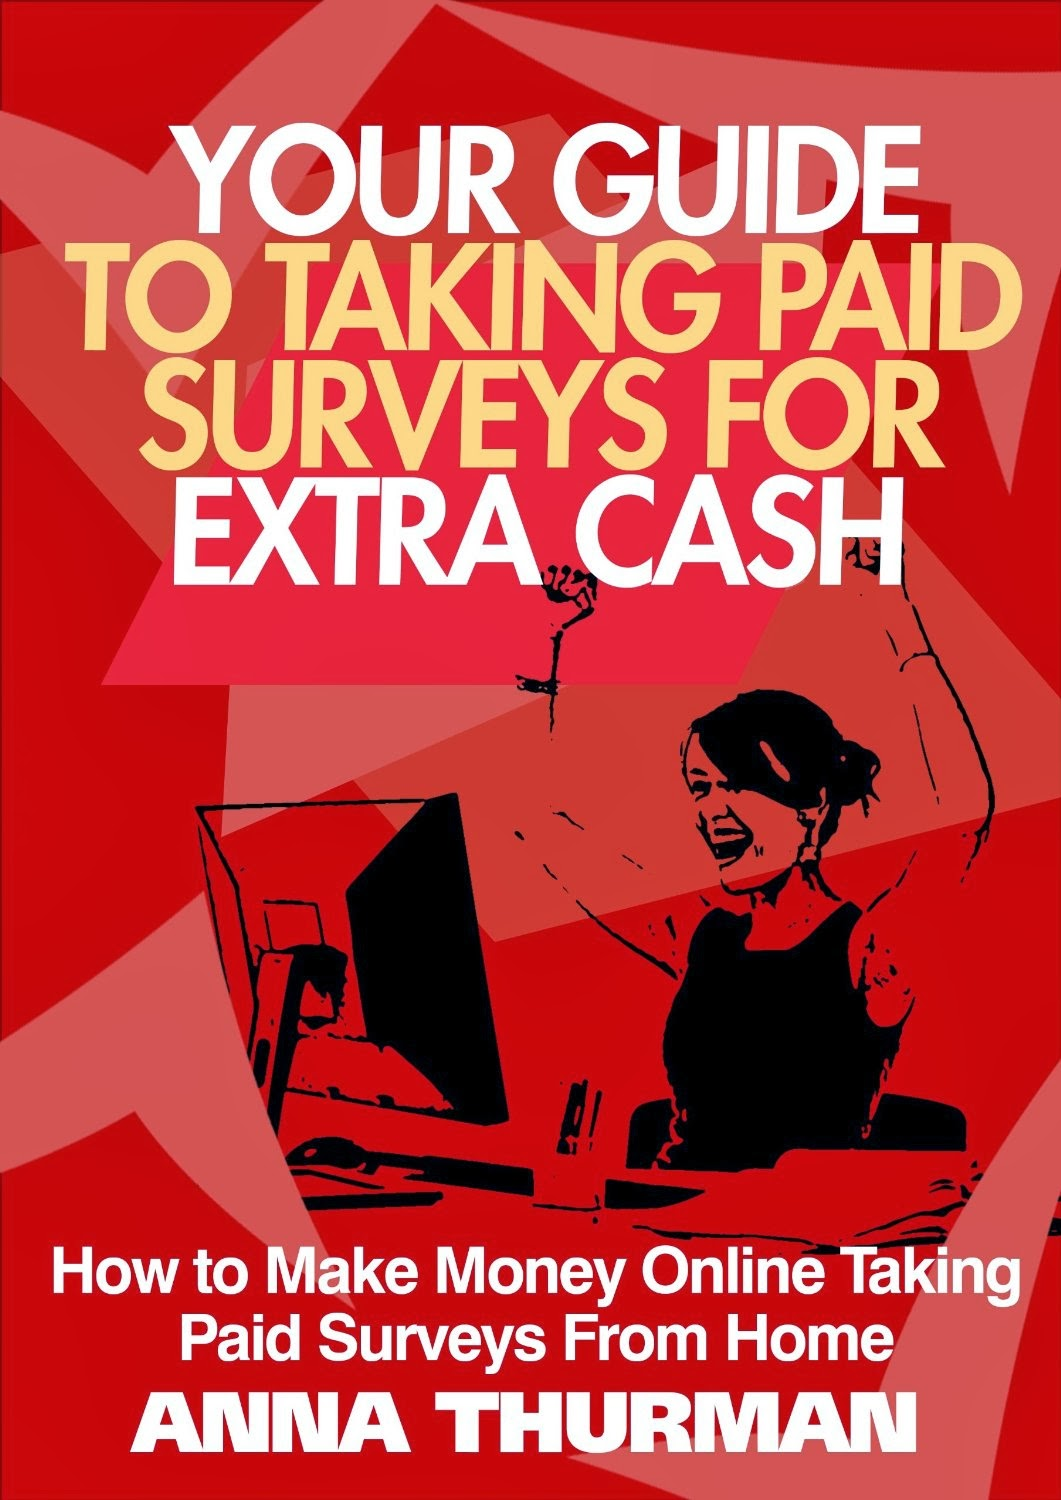 Your Guide To Taking Paid Surveys For Extra Cash By Anna Thurman: A Review  Your